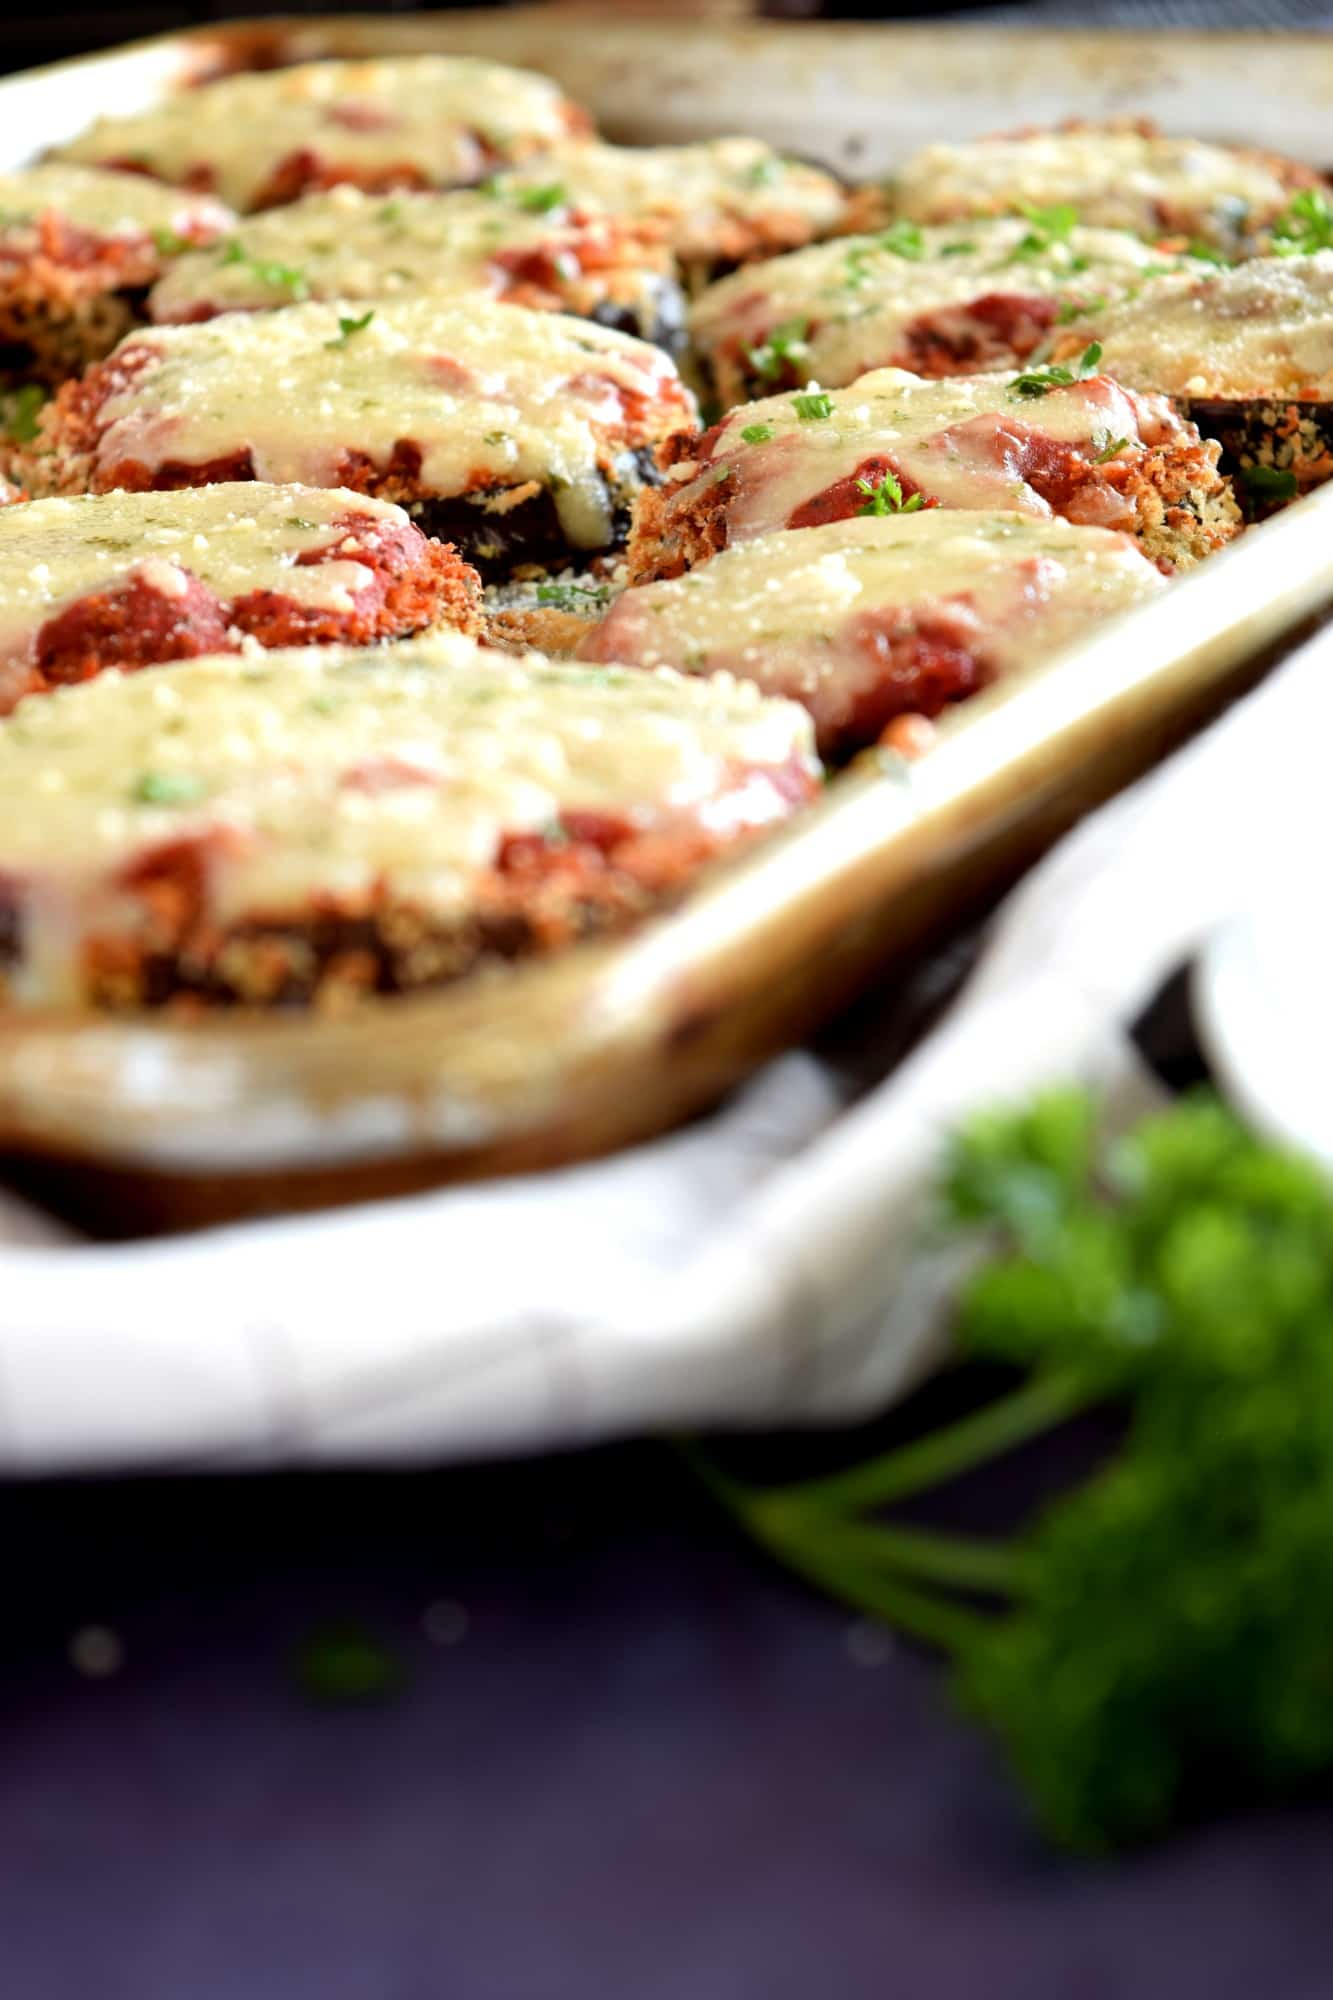 Sheet pan eggplant parmesan lord byrons kitchen you cant see it in the pictures but i was able to get two full sheet pans full of individually sliced eggplant parmesan to serve the dish forumfinder Gallery